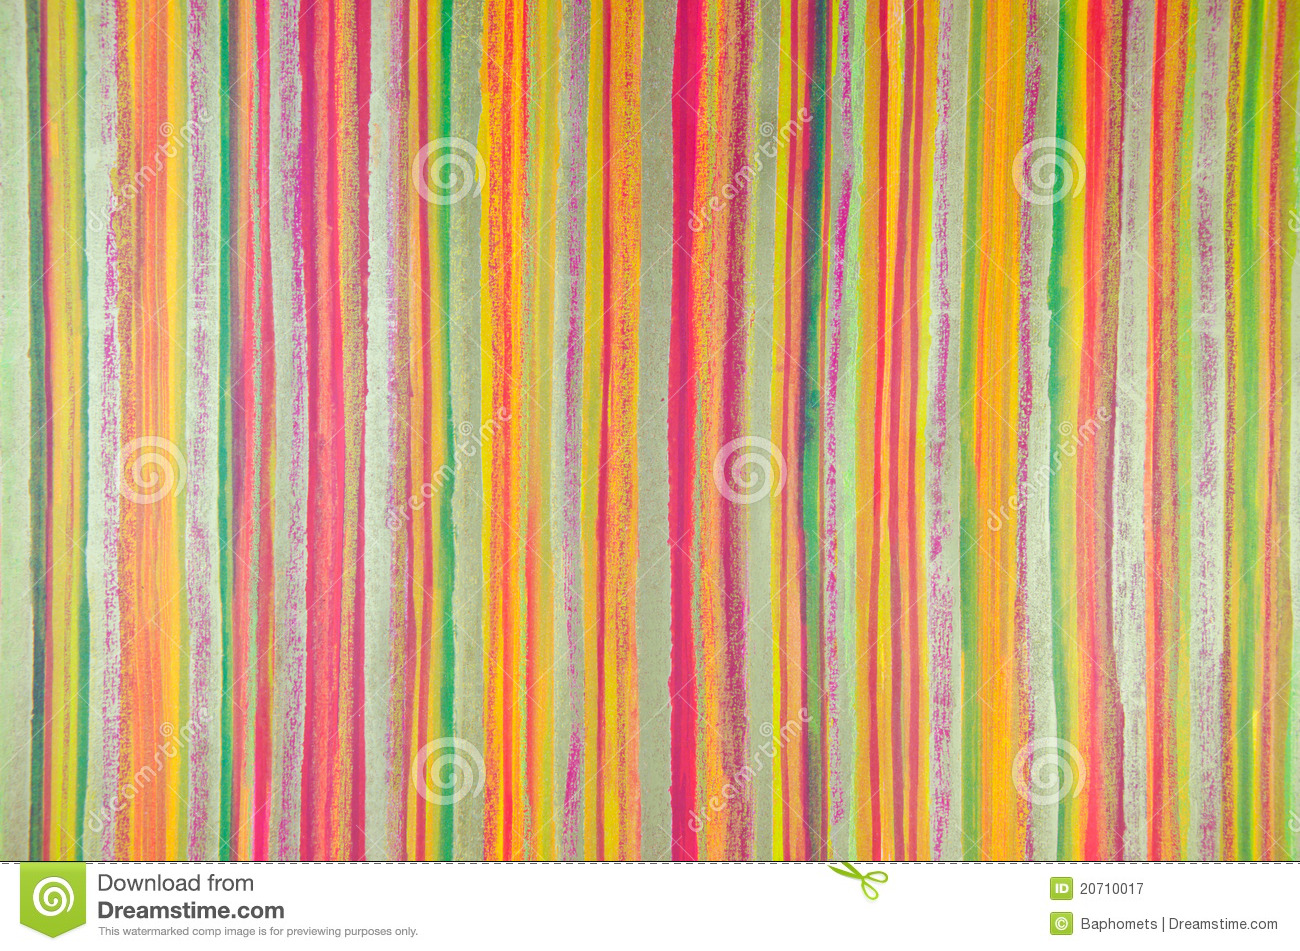 Background Art Design : Colorful abstract design art background stock image